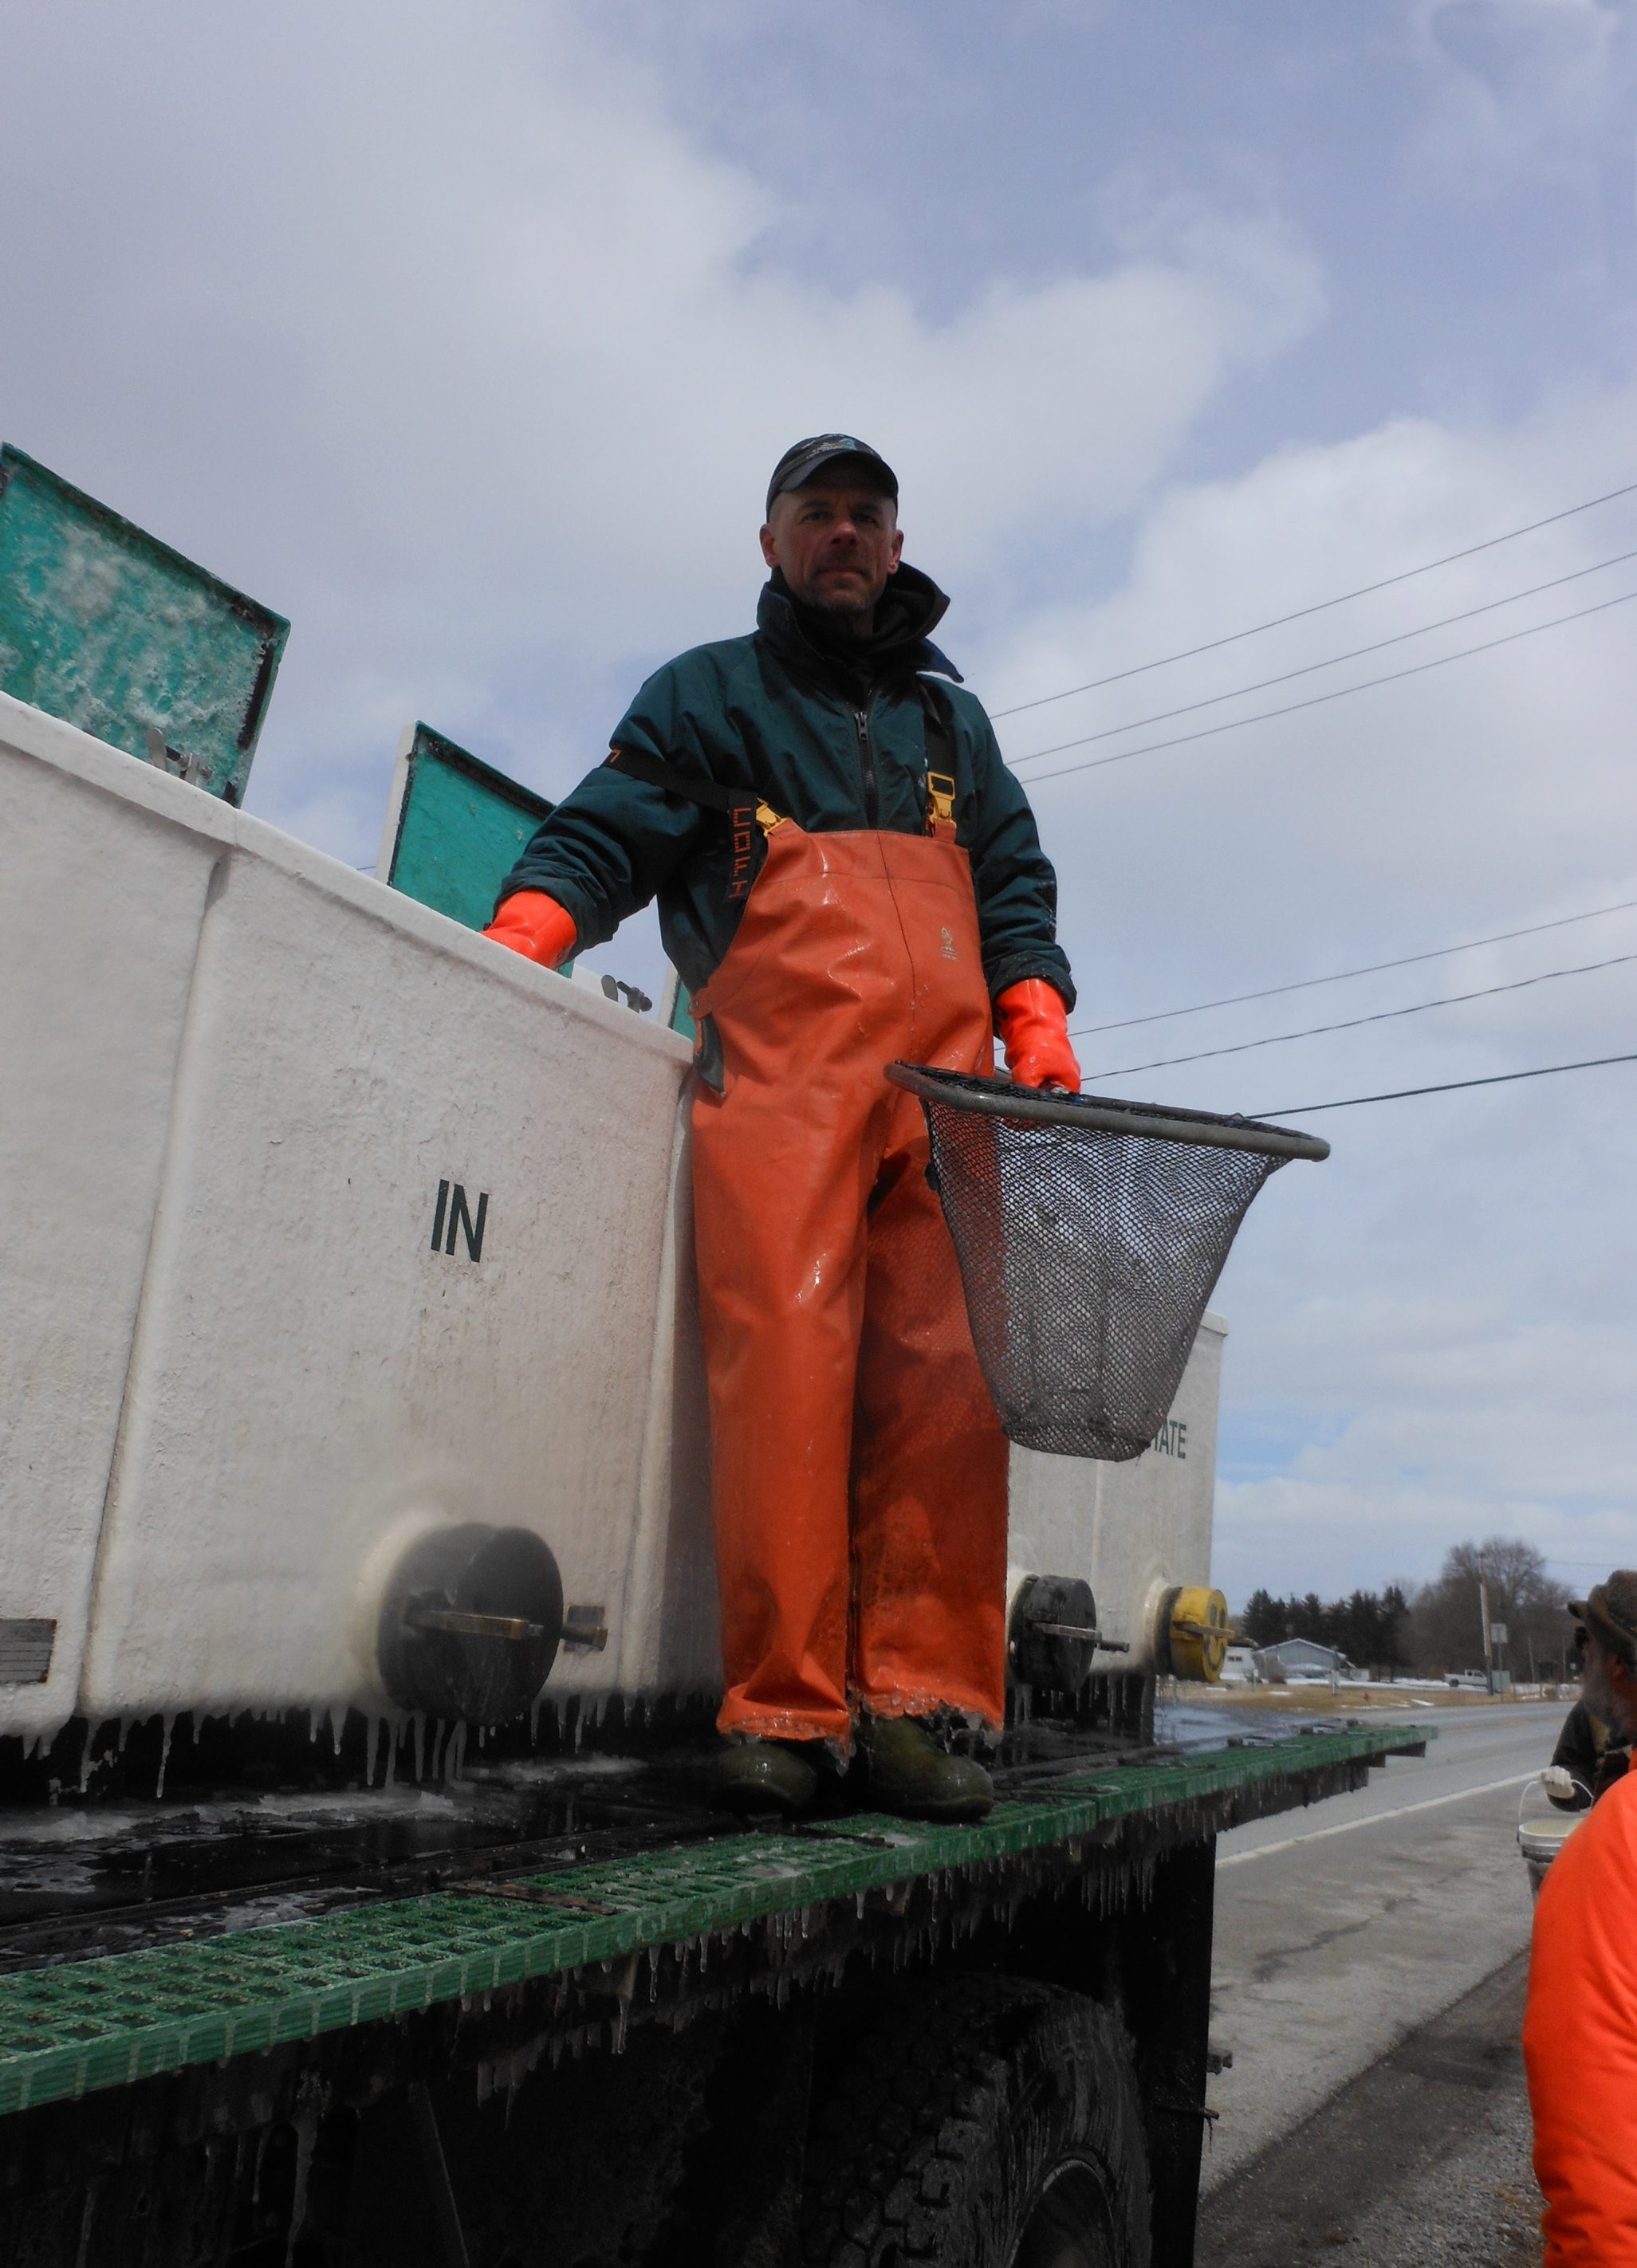 Barry Hohmann, hatchery fish culturist, is seeing good net results for stocking trout species in area streams before the Tuesday opening of the inland trout season.